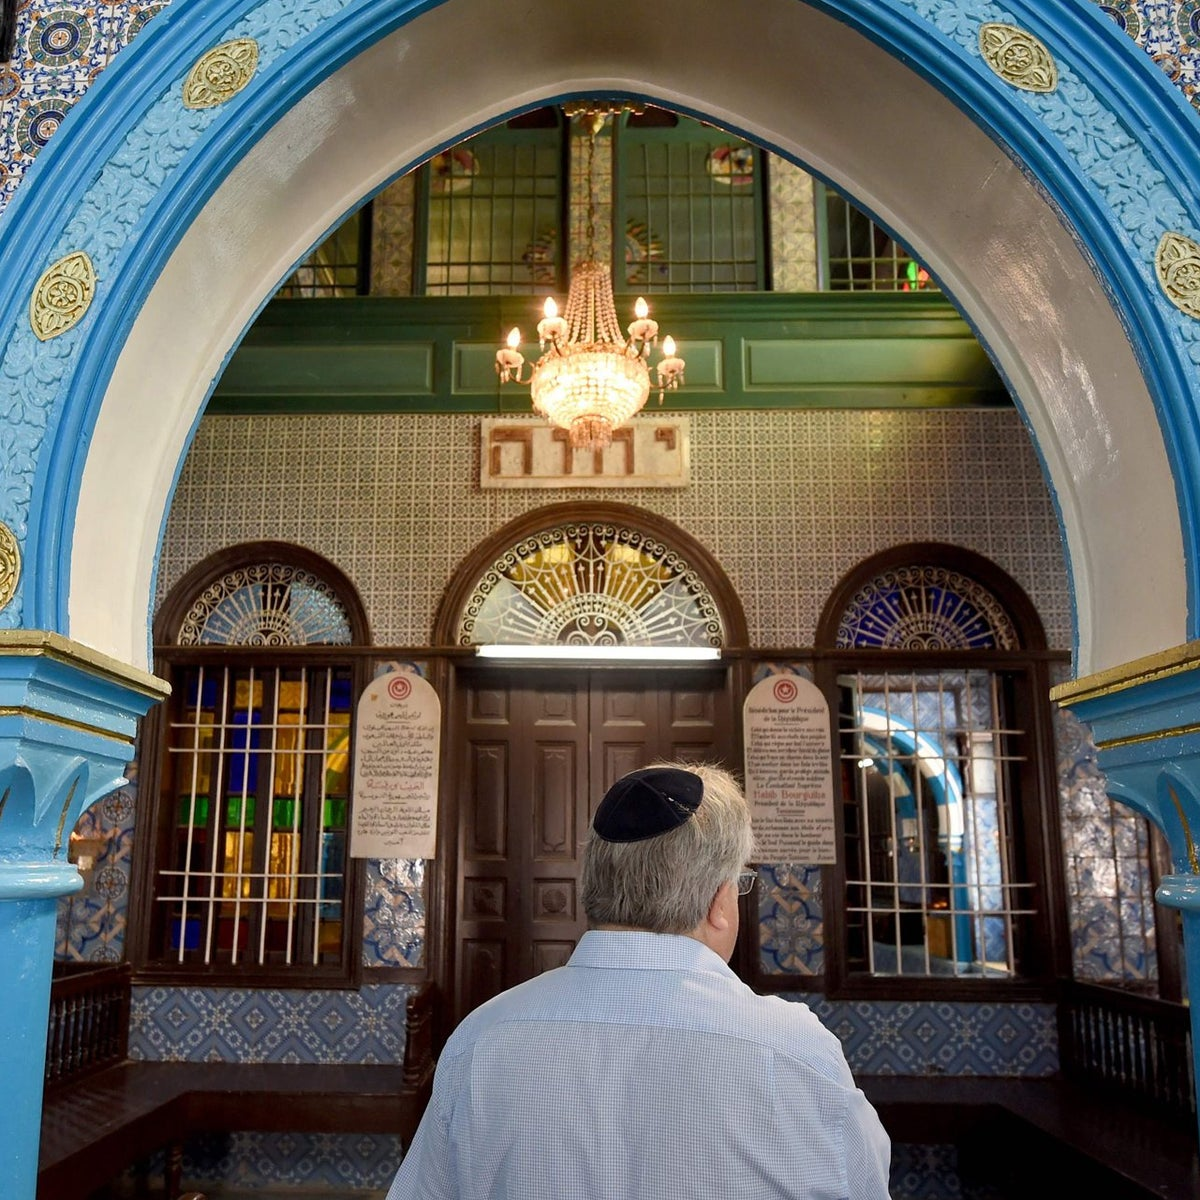 Chief executive of Liberal Judaism in the United Kingdon Rabbi Danny Rich is seen at the Ghriba synagogue in the Tunisian resort island of Djerba during the annual Jewish pilgrimage on May 25, 2016.